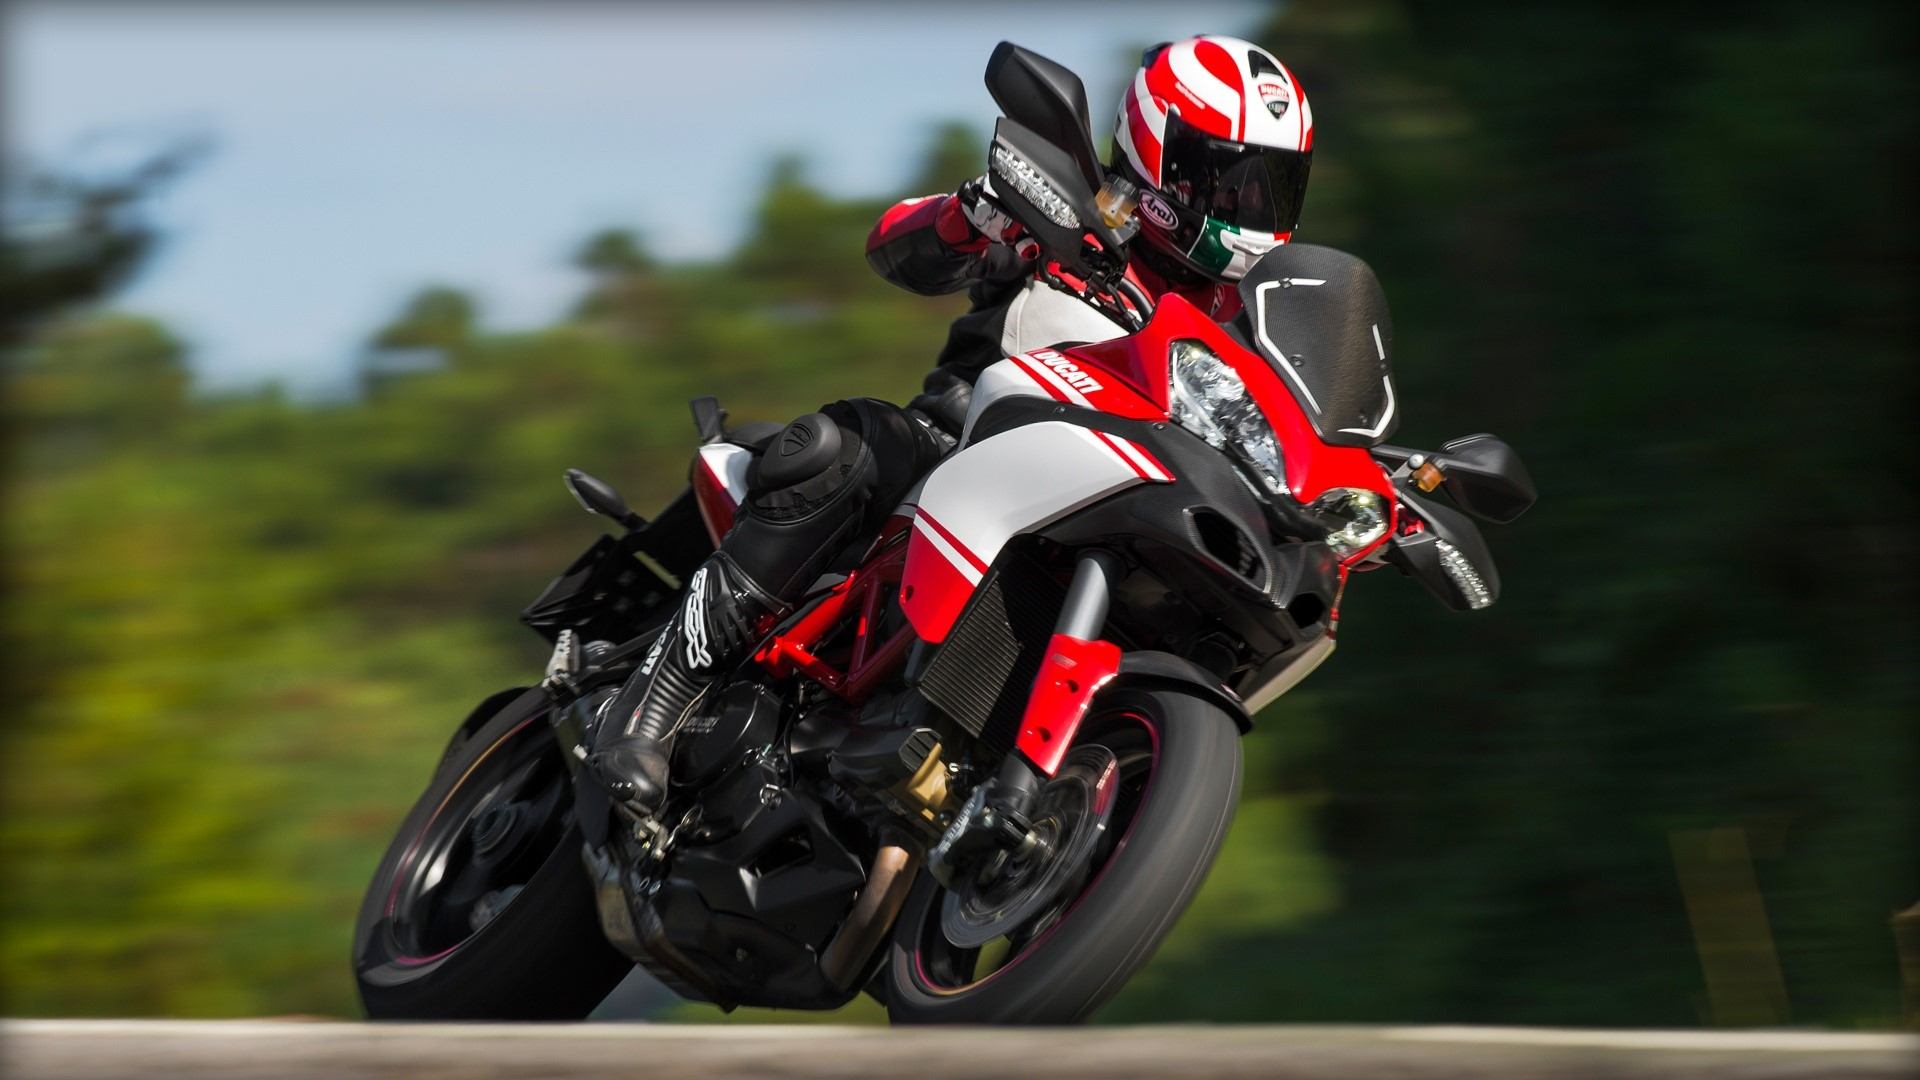 Ducati Multistrada 1200 Pikes Peak launched in India